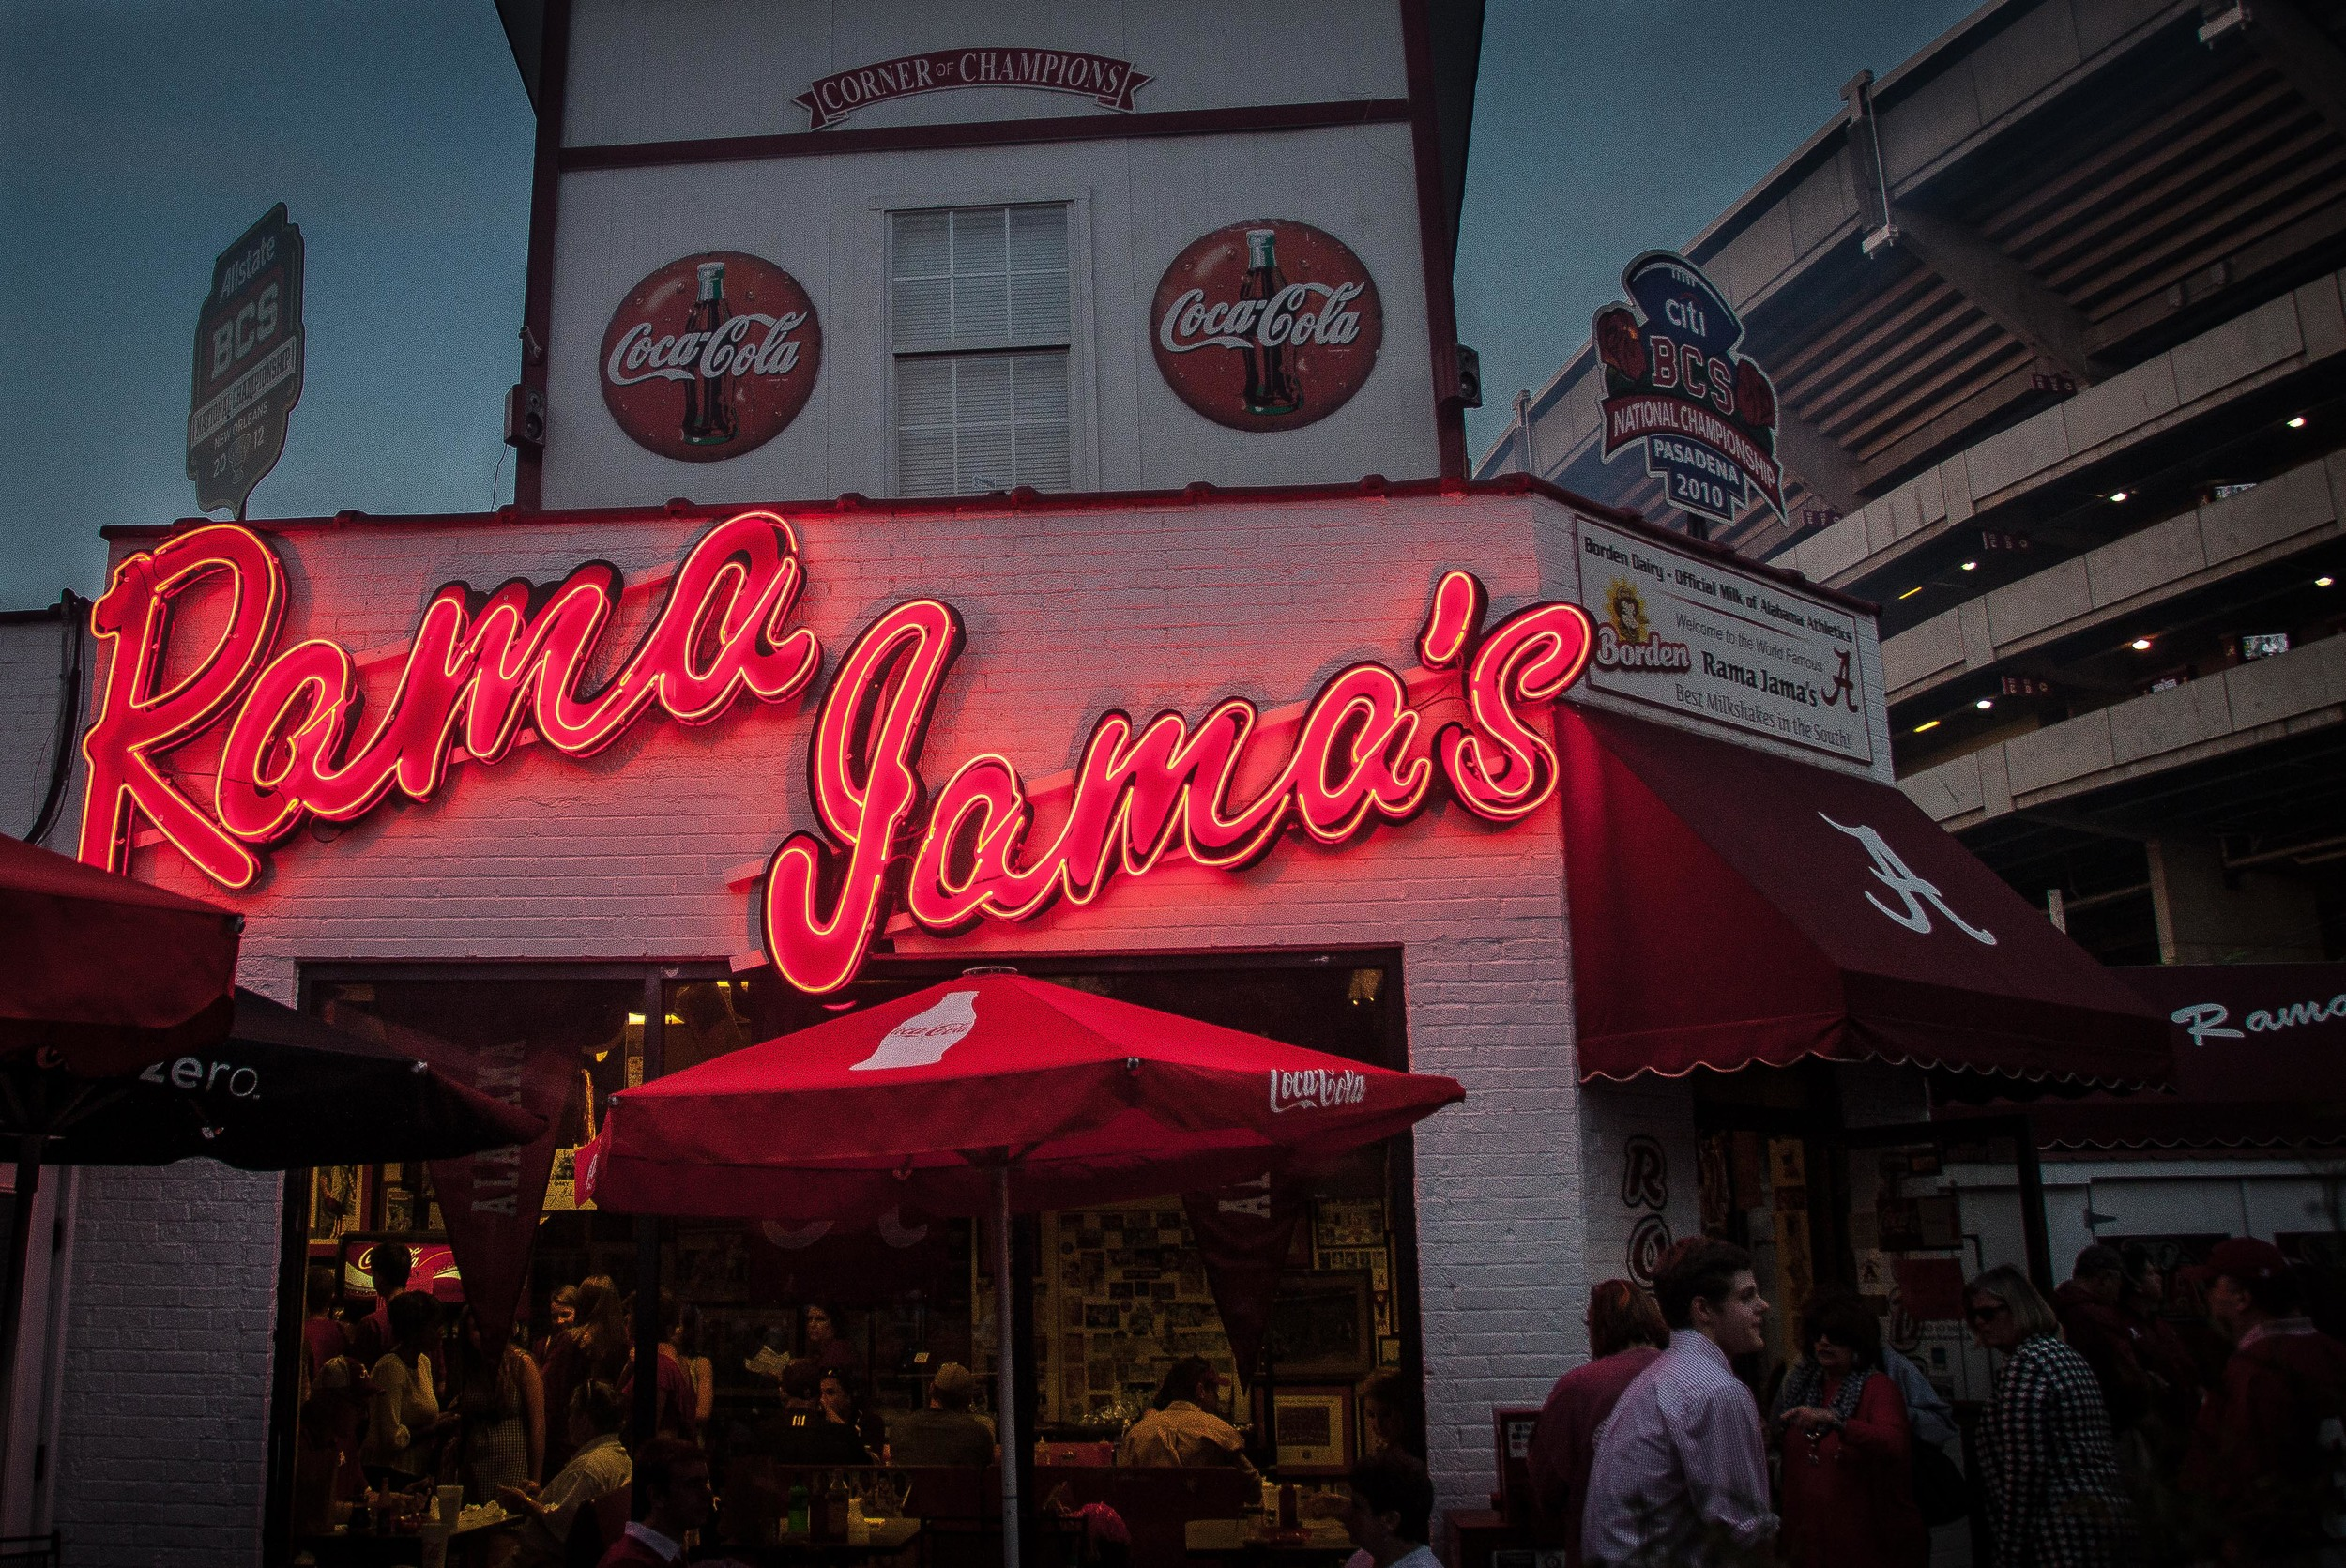 While walking around after the game I followed a line of people to Rama Jama's. This restaurant is on the corner of Paul W Bryant Dr and Wallace Wade Ave in Tuscaloosa, AL.